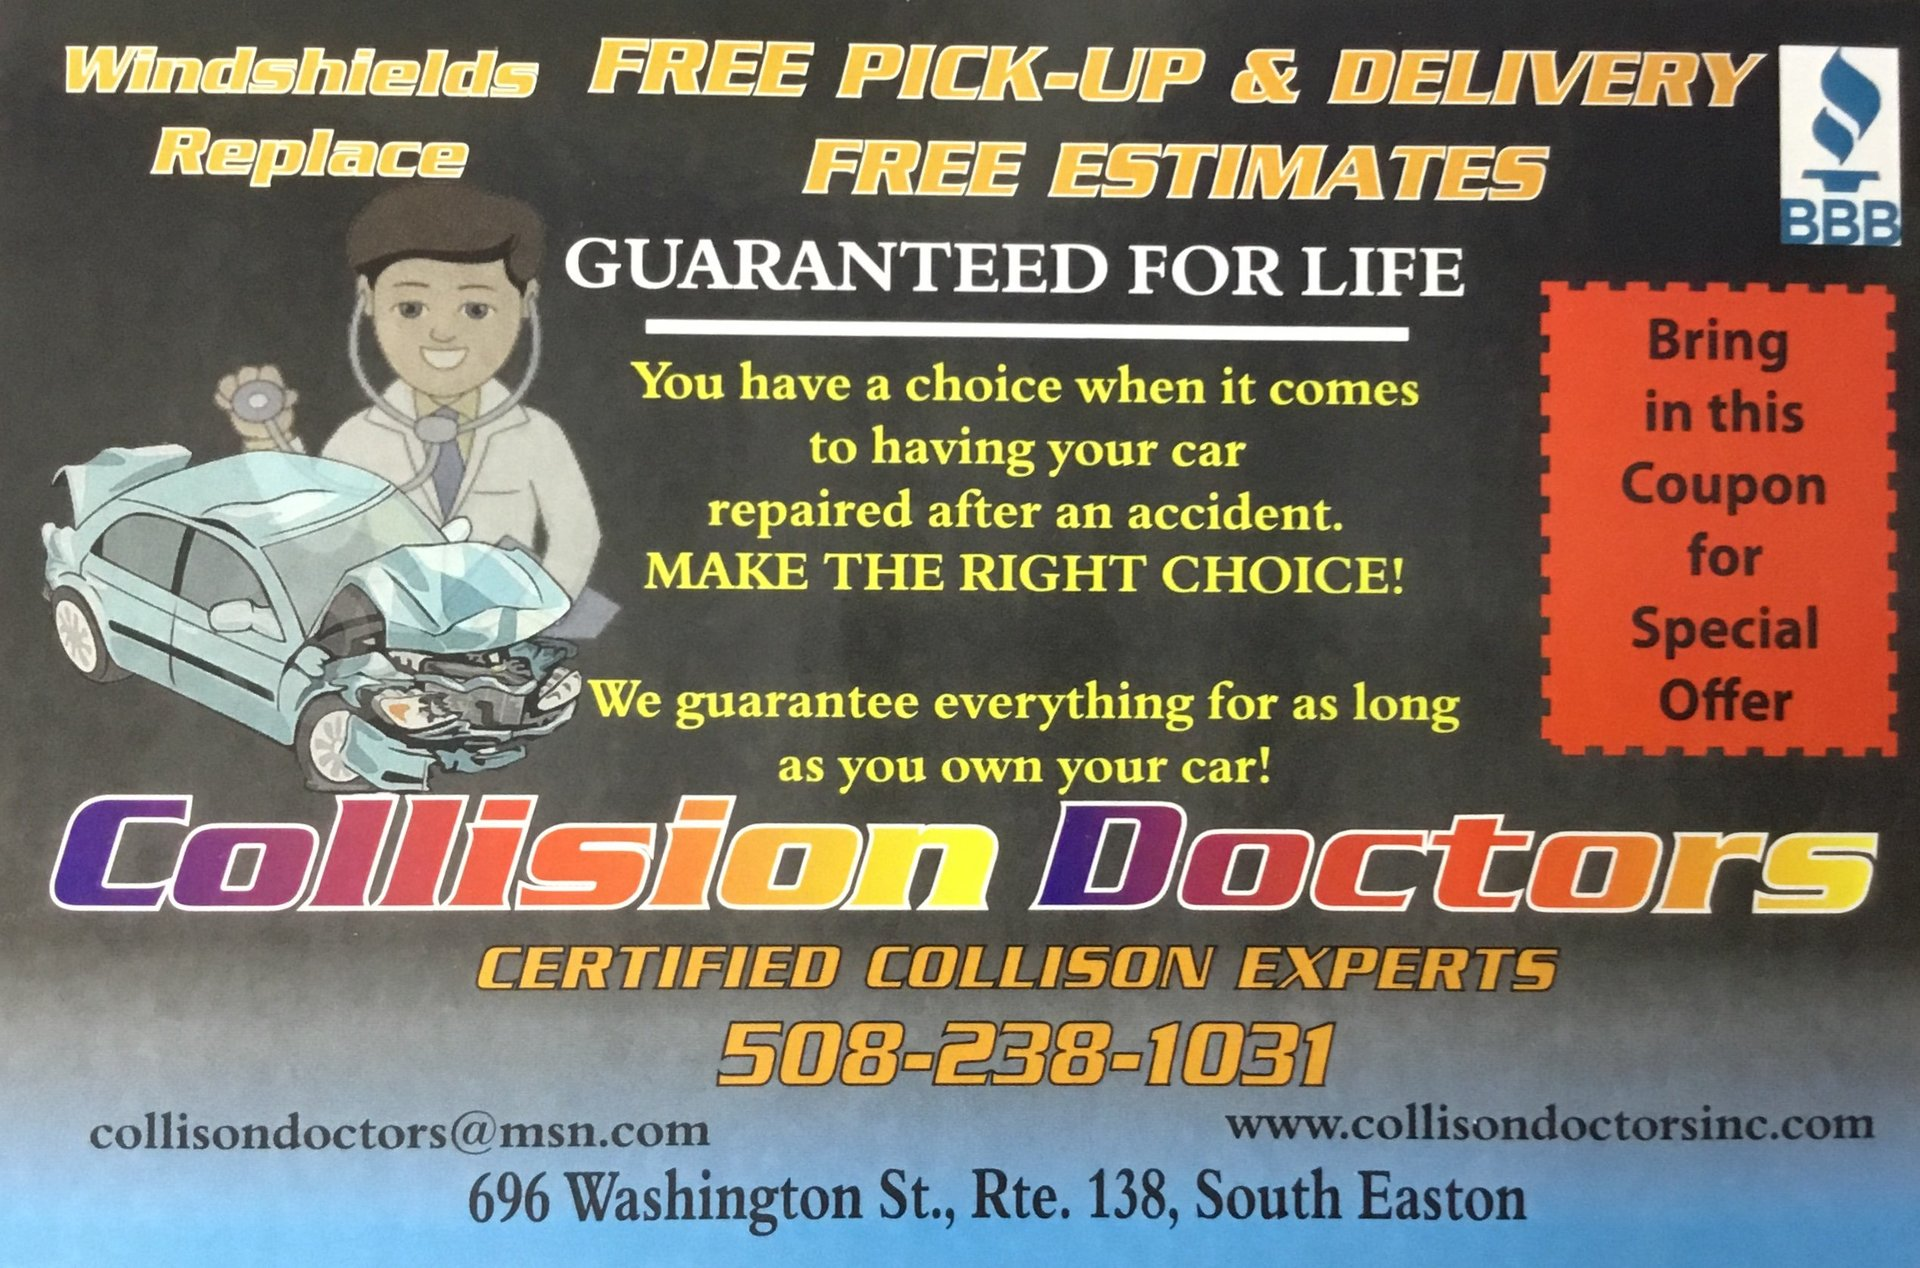 Collision Doctors Inc Photo Gallery | South Easton, MA